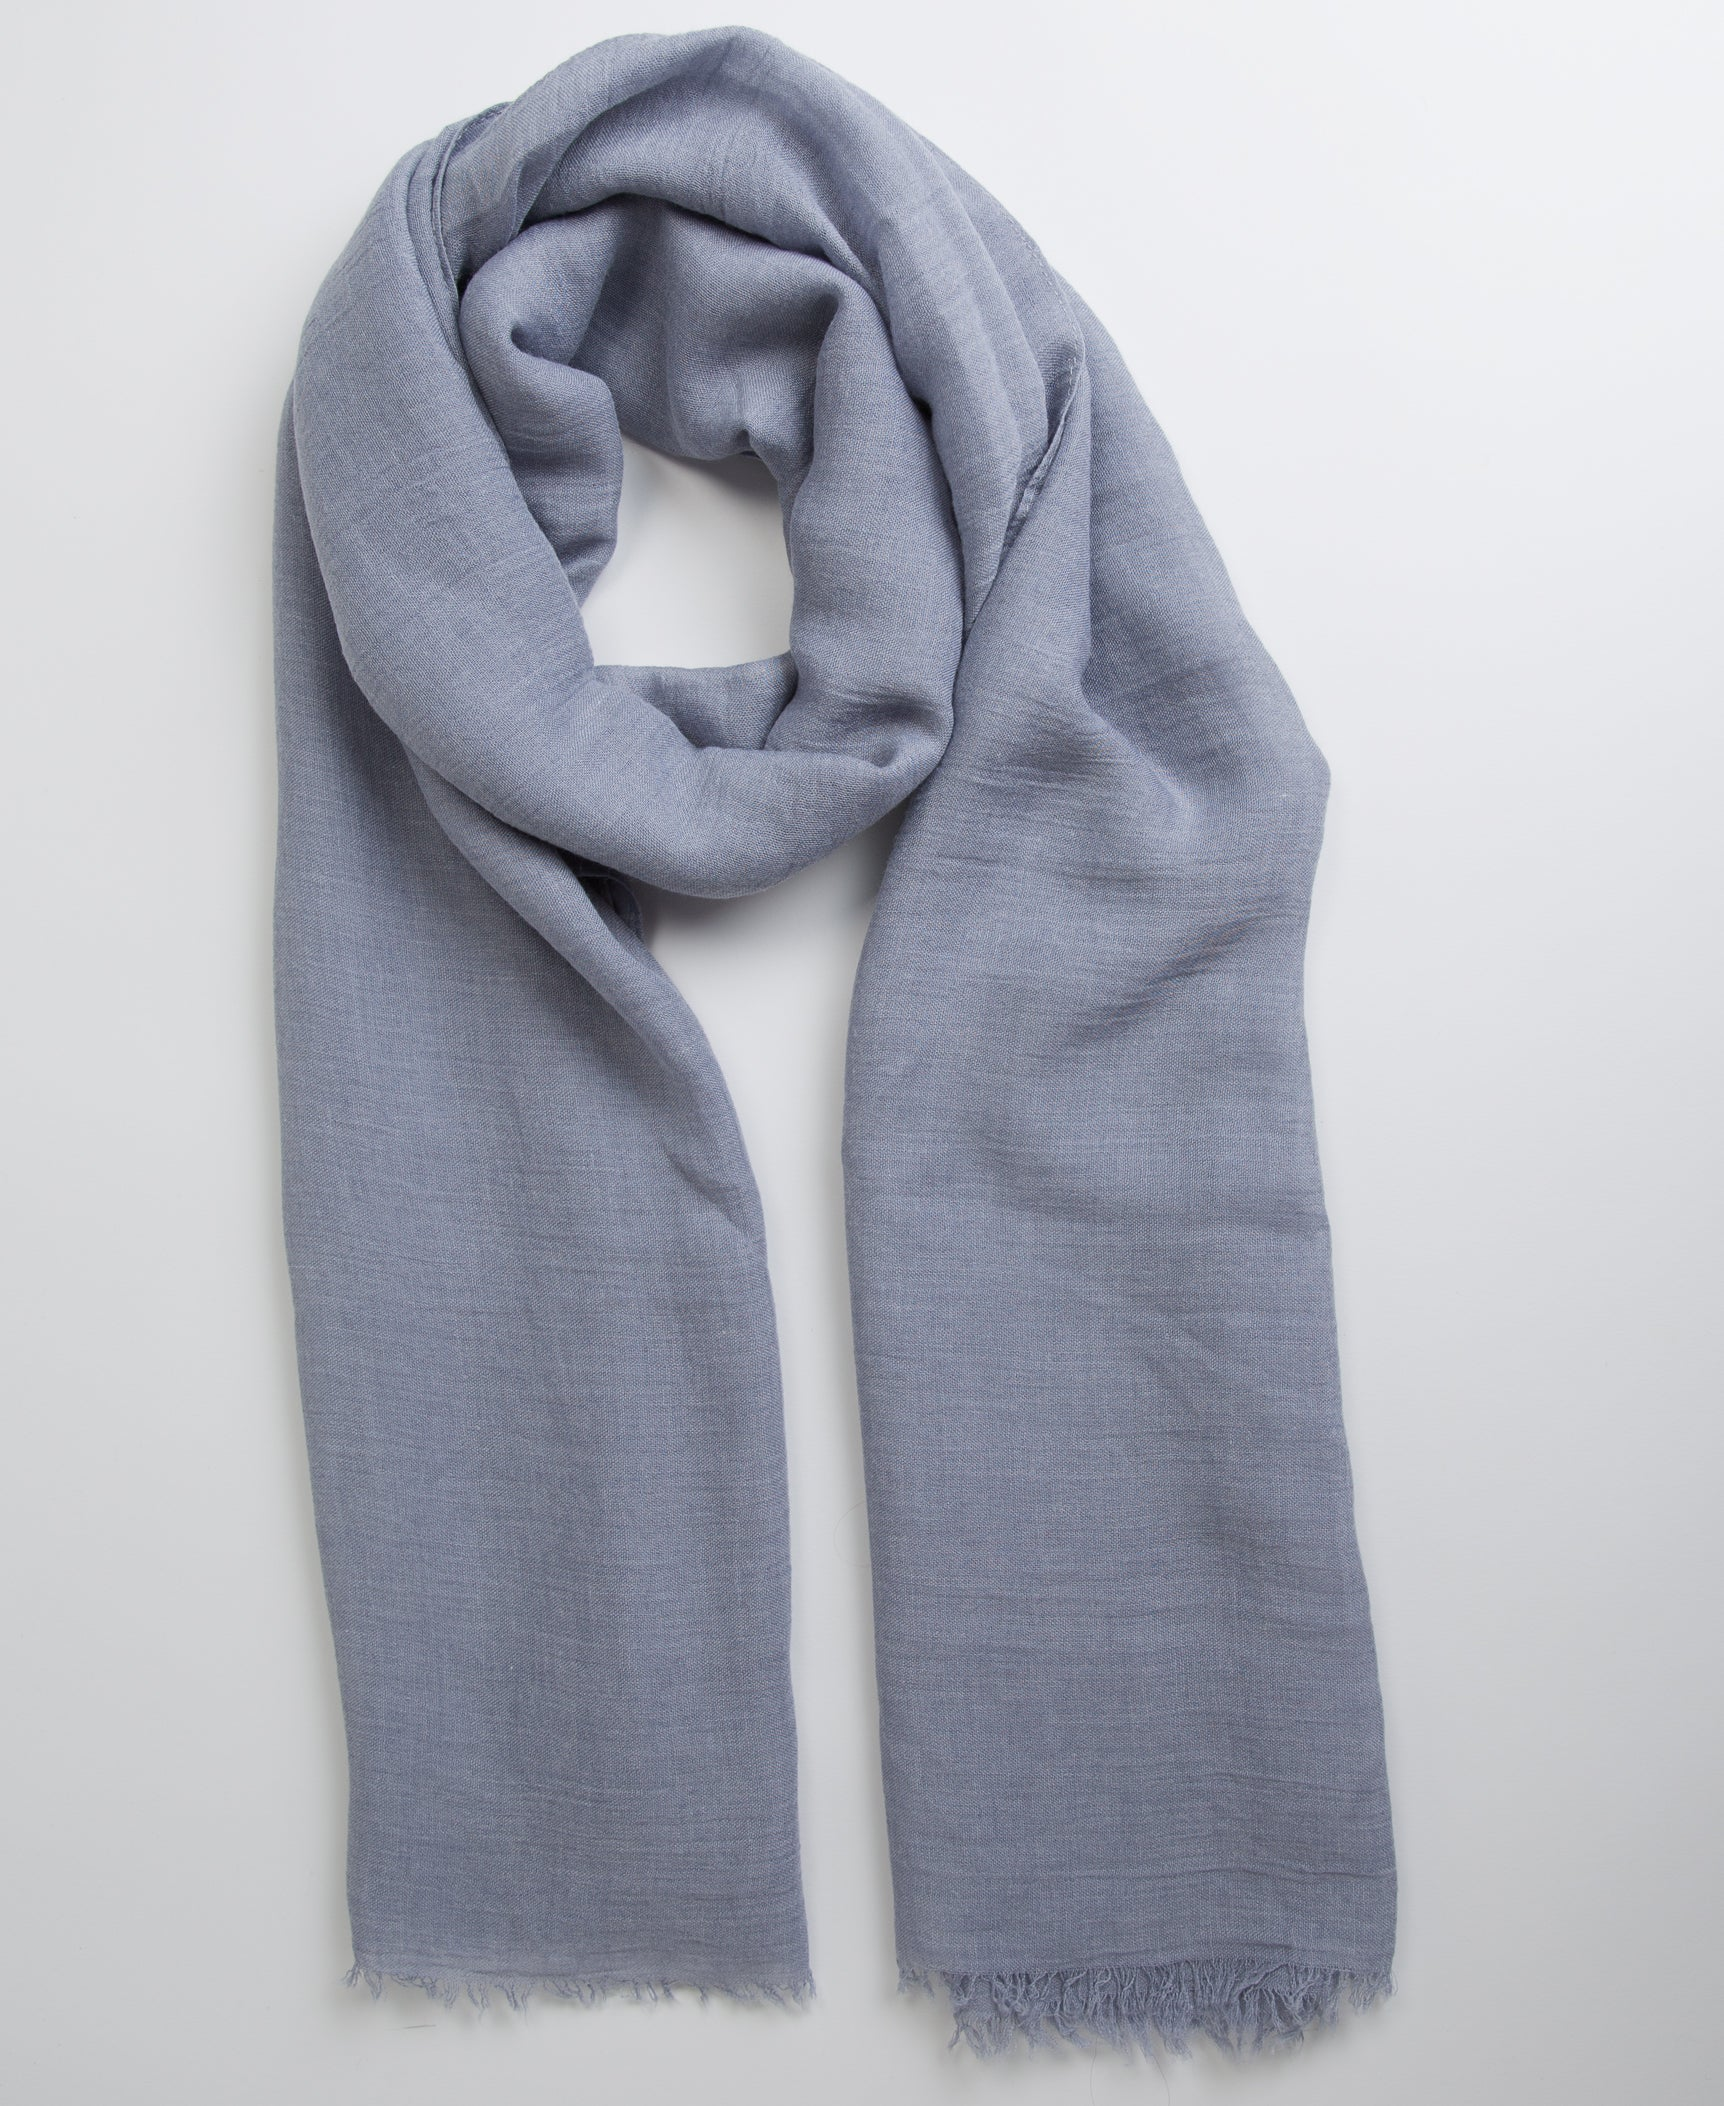 Hand Dyed Viscose Hijab - Blue Grey